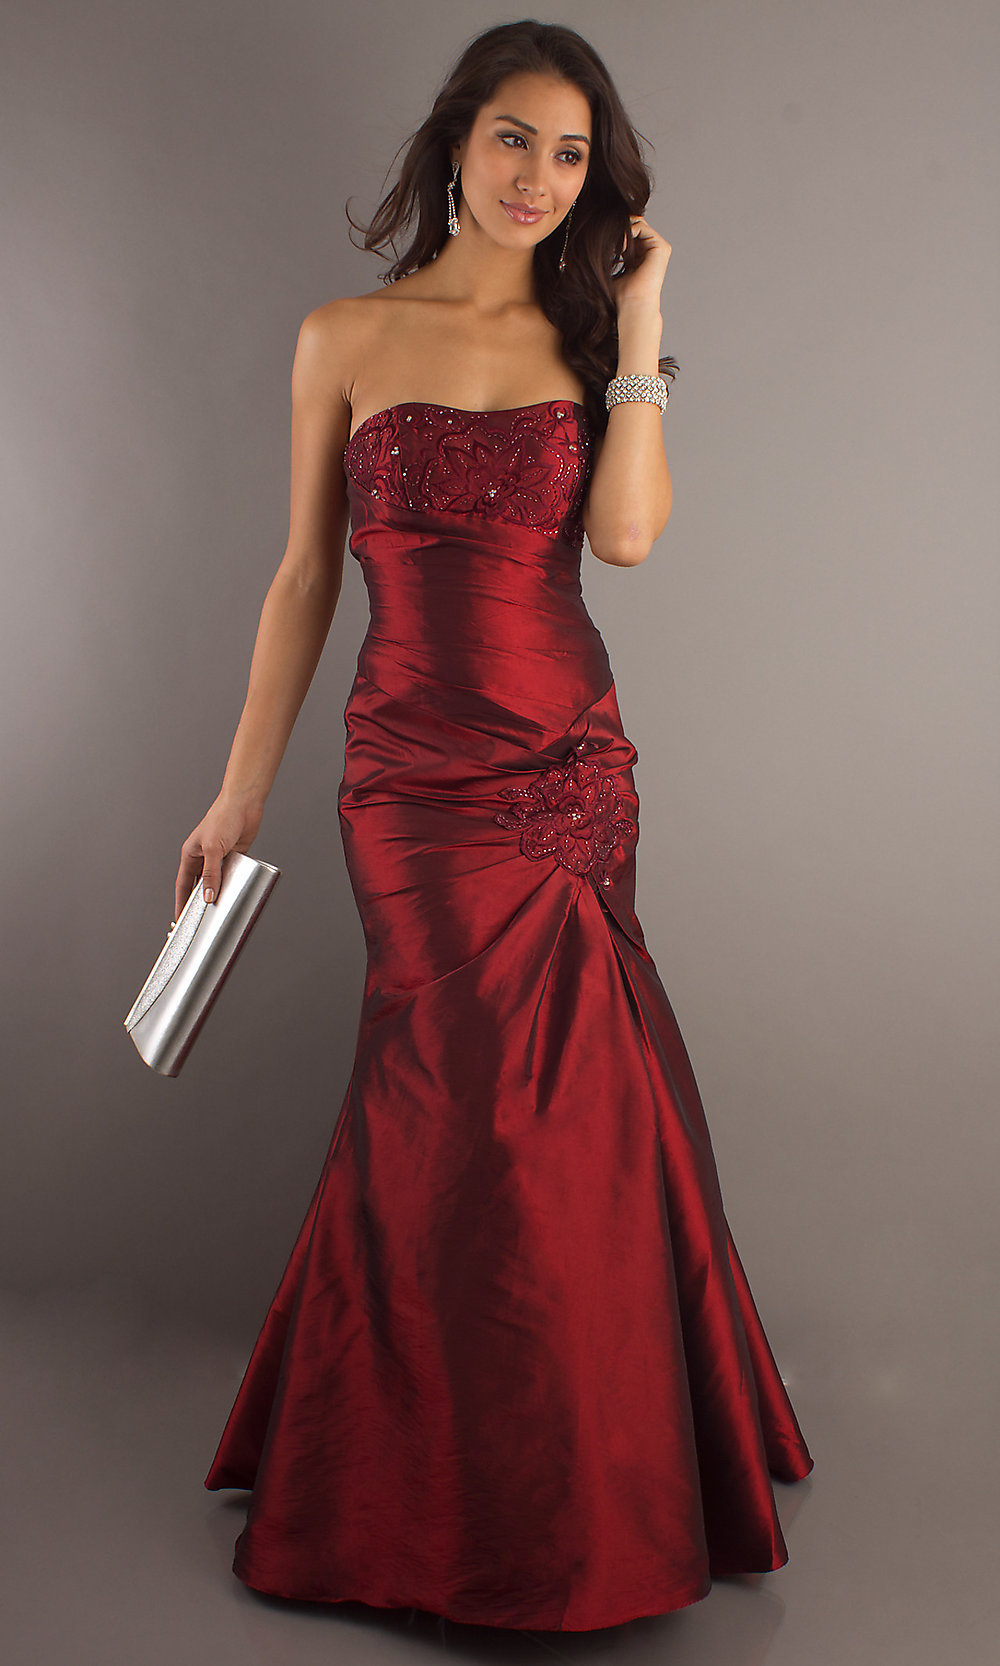 Wedding Burgundy Prom Dress burgundy formal gown strapless prom dresses promgirl hover to zoom